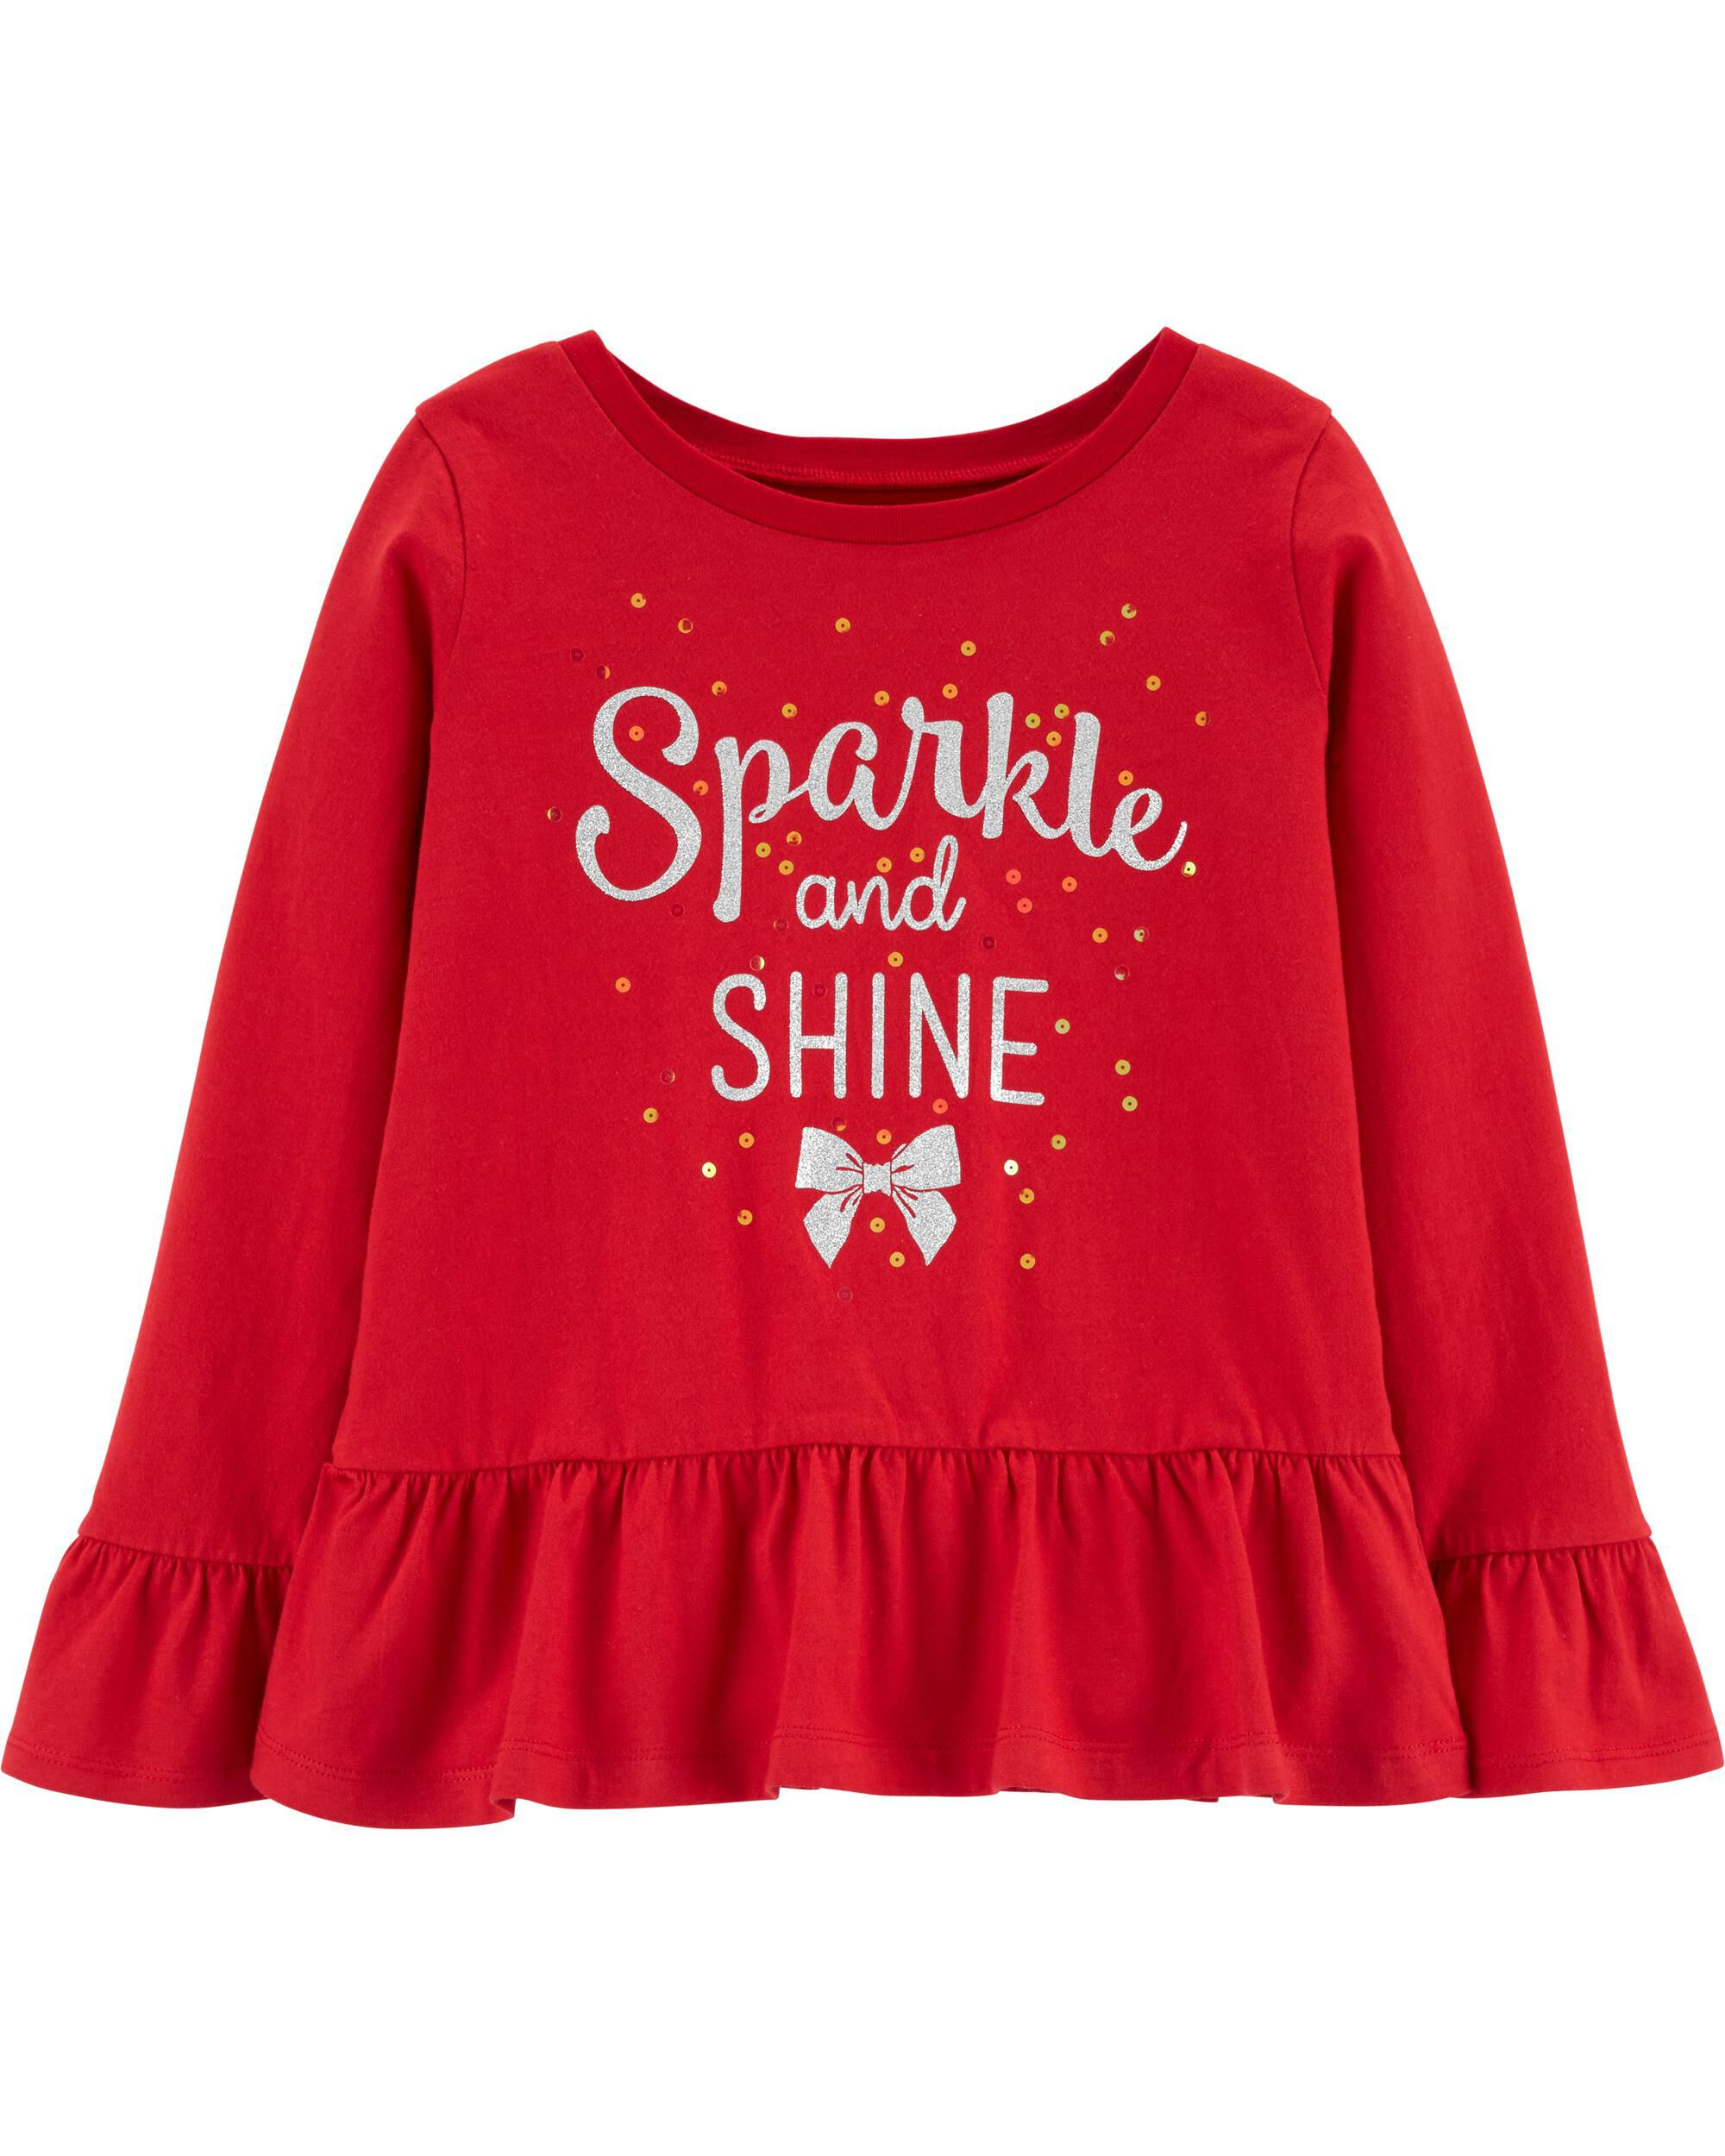 ORIGINAL GIRLS SHIMMER AND SHINE T-SHIRTS CLEARANCE